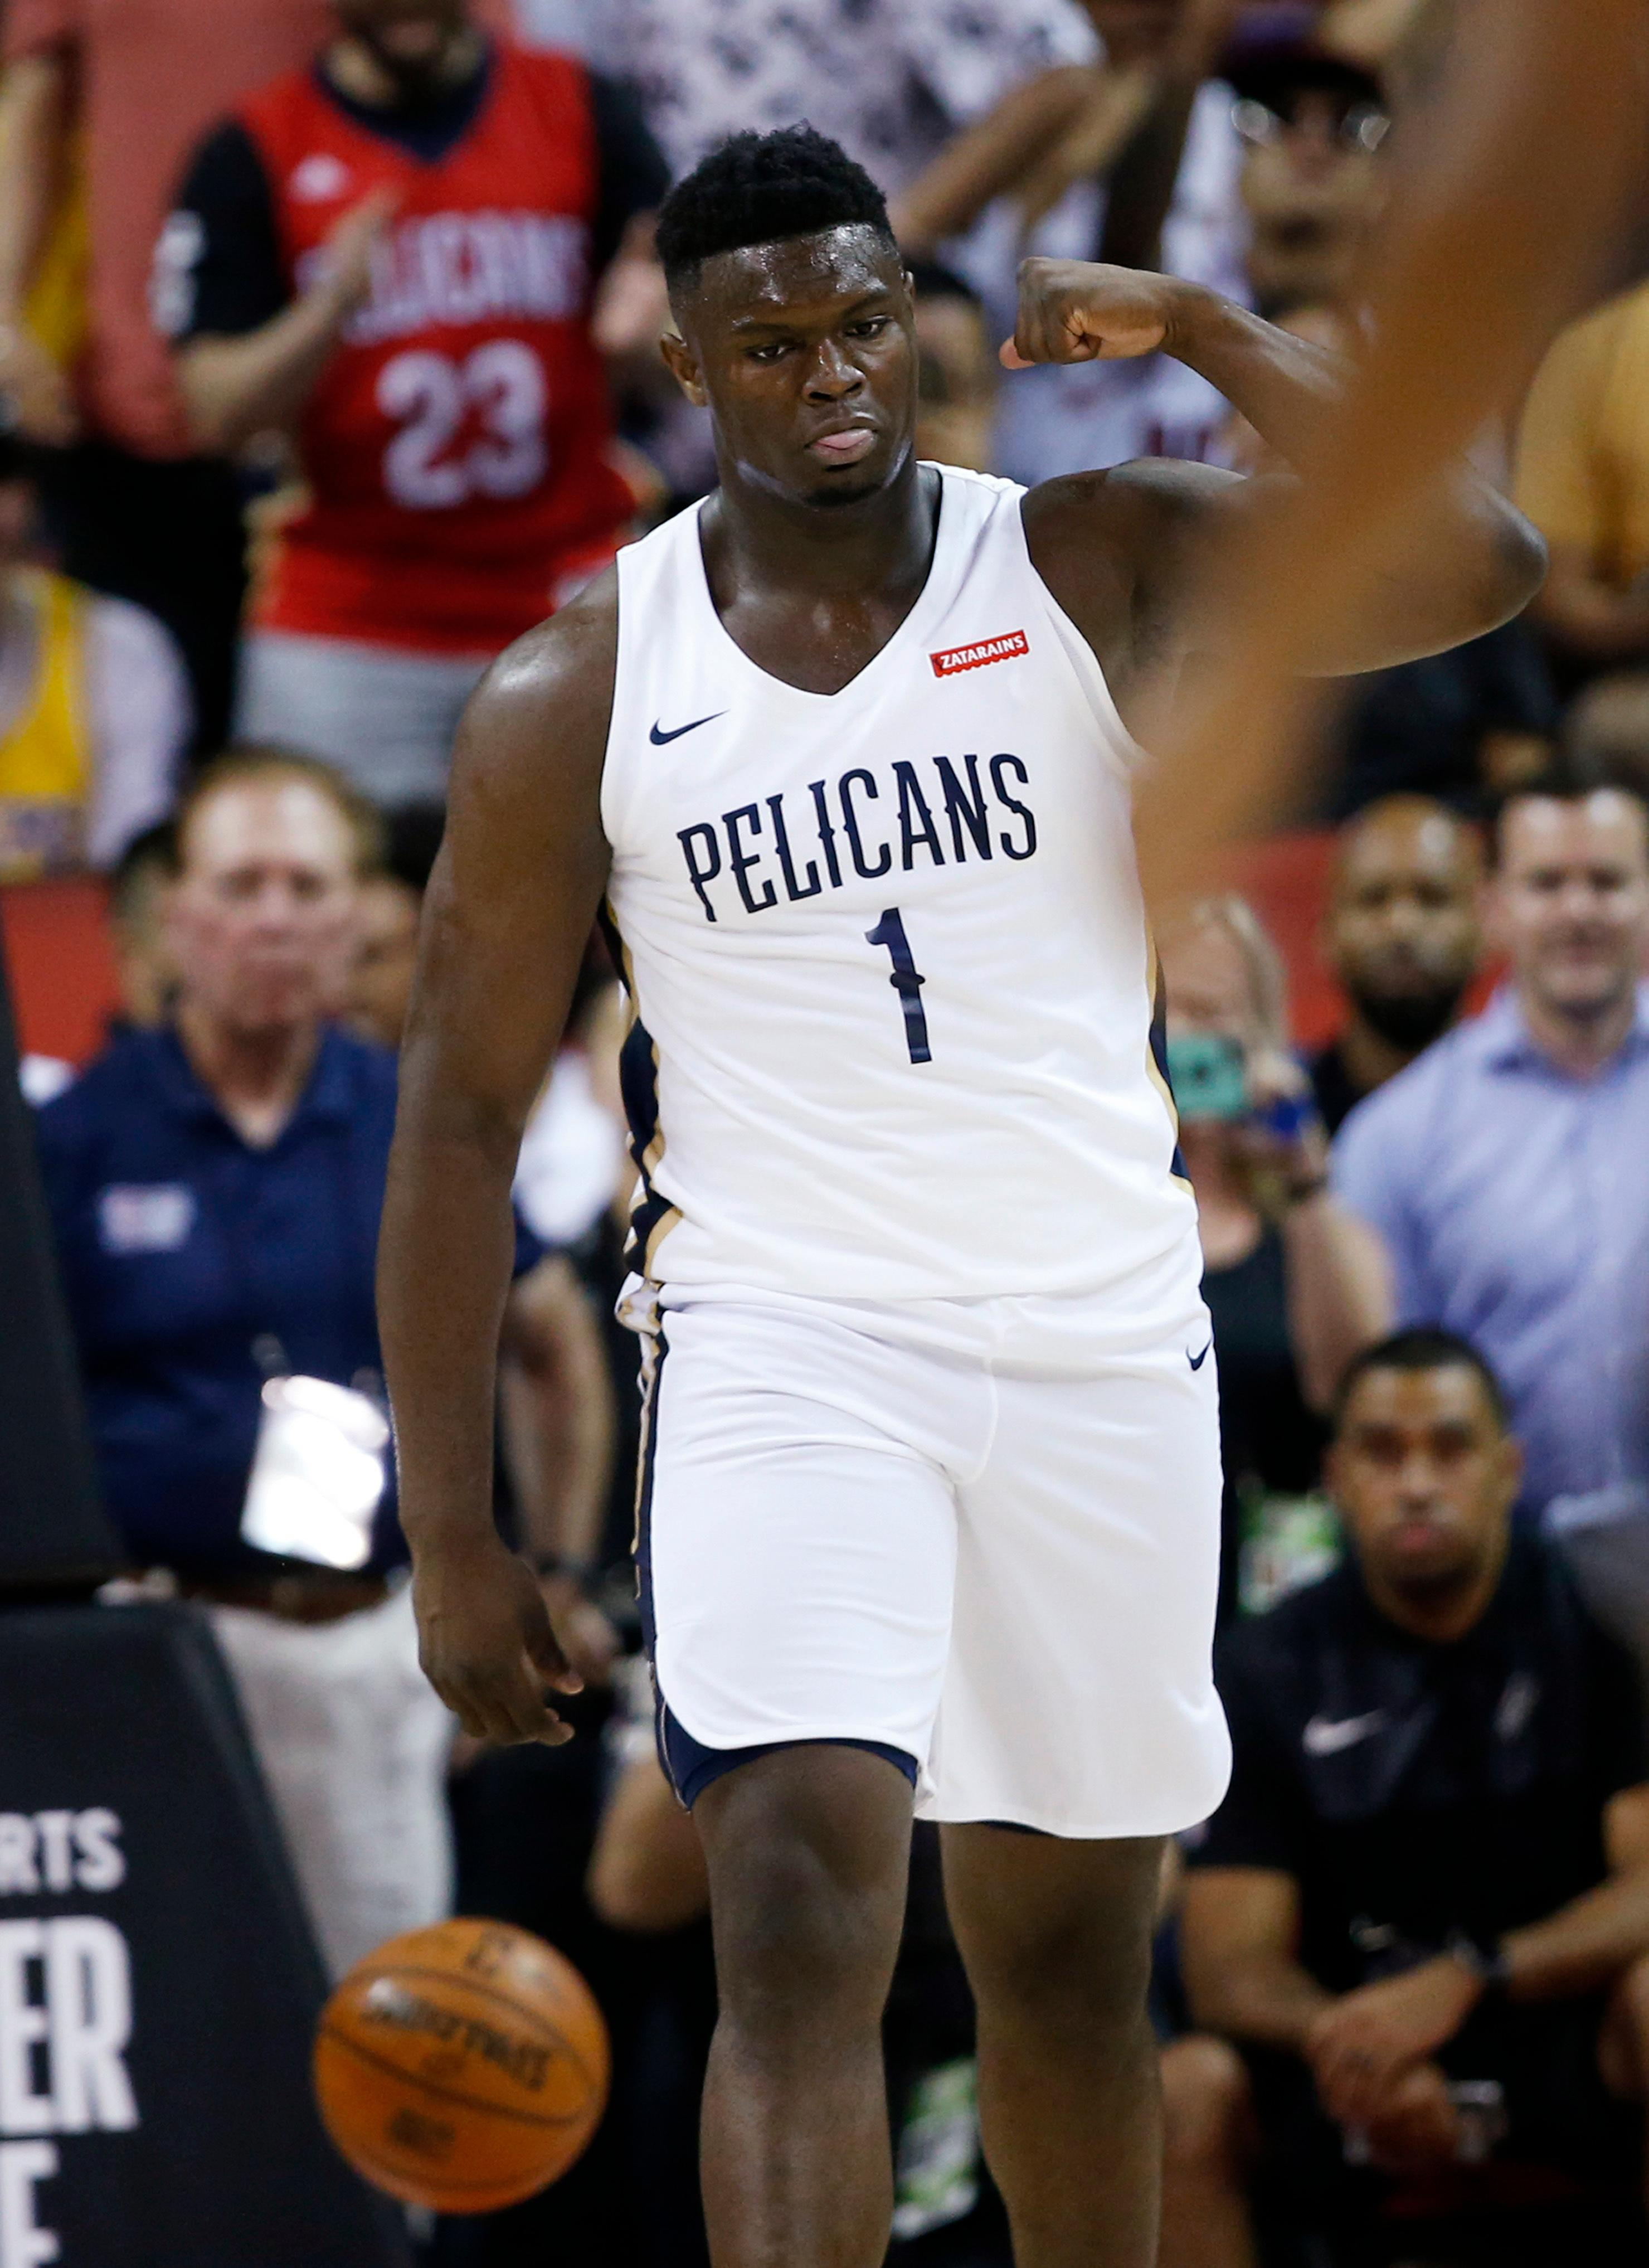 New Orleans Pelicans' Zion Williamson (1) reacts during the team's NBA summer league basketball game against the New York Knicks on Friday, July 5, 2019, in Las Vegas. (AP Photo/Steve Marcus)